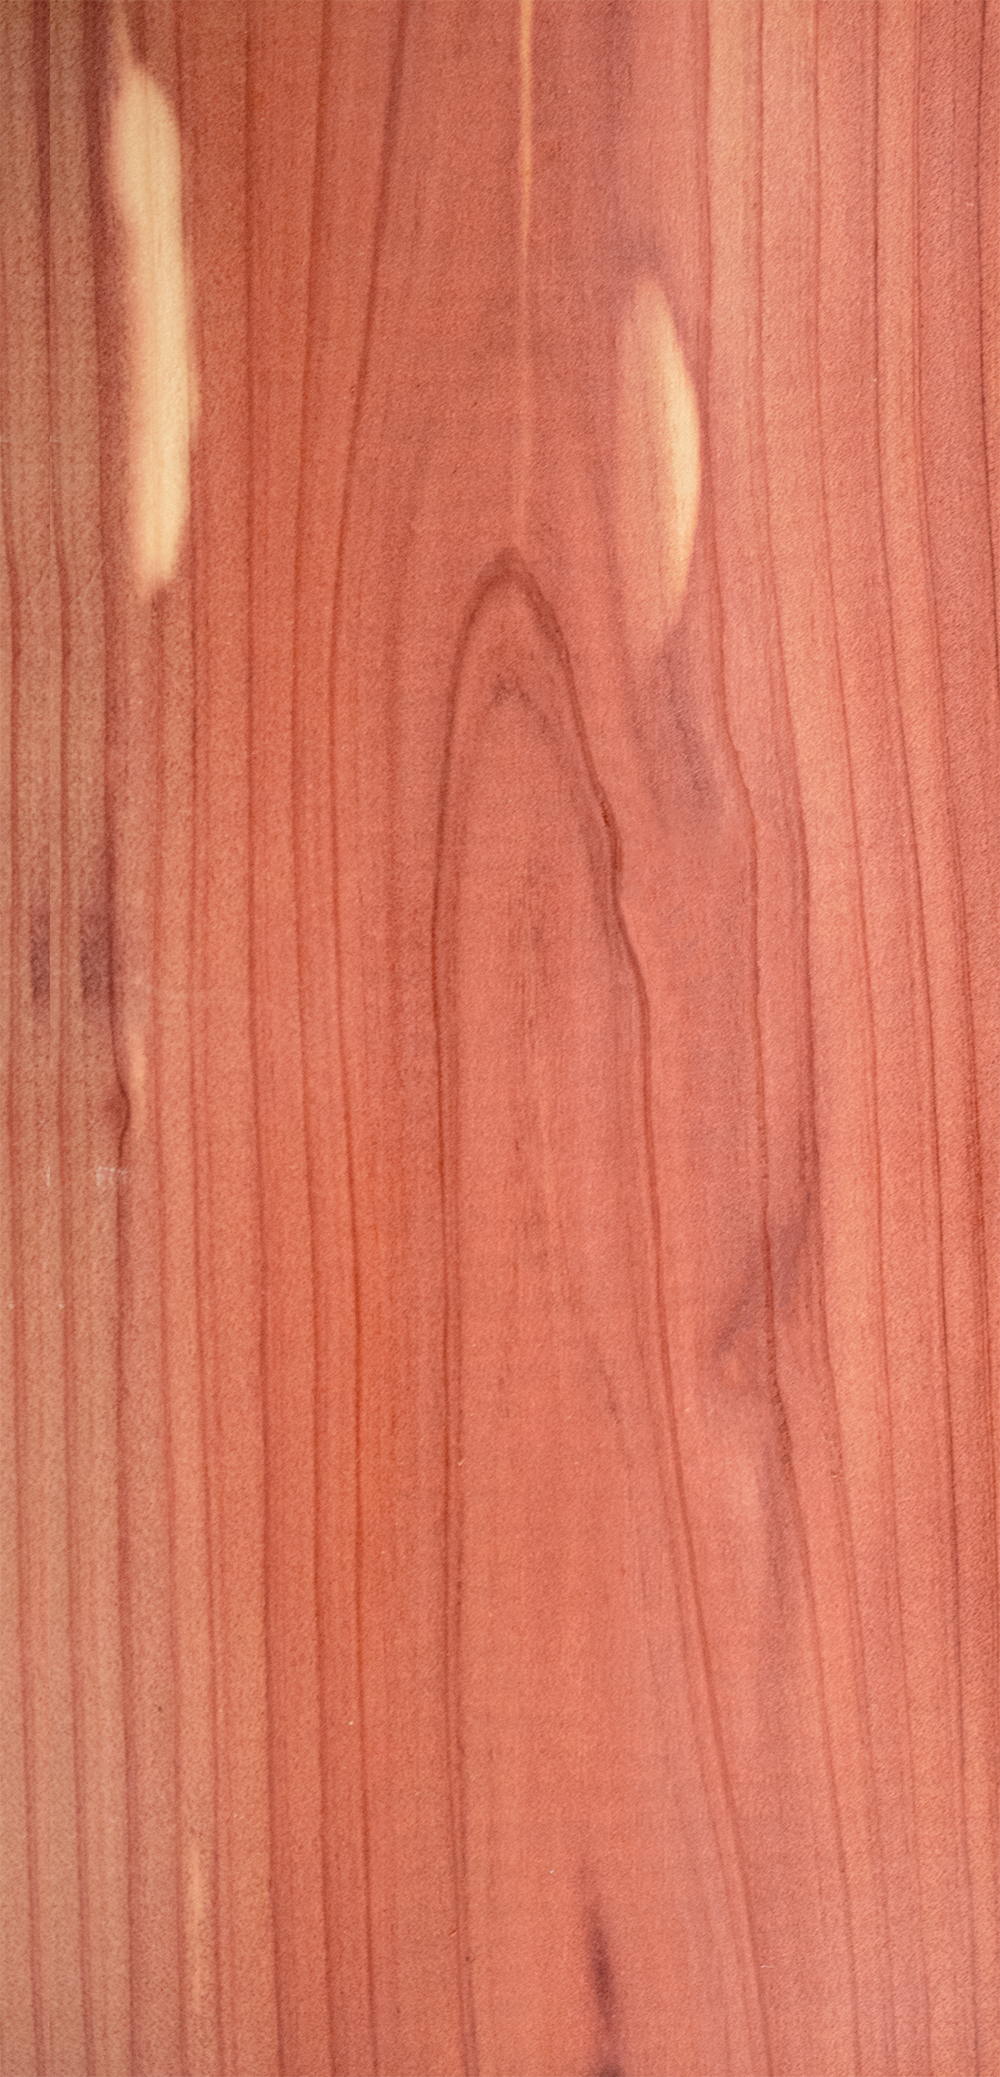 OC Aromatic Red Cedar resize